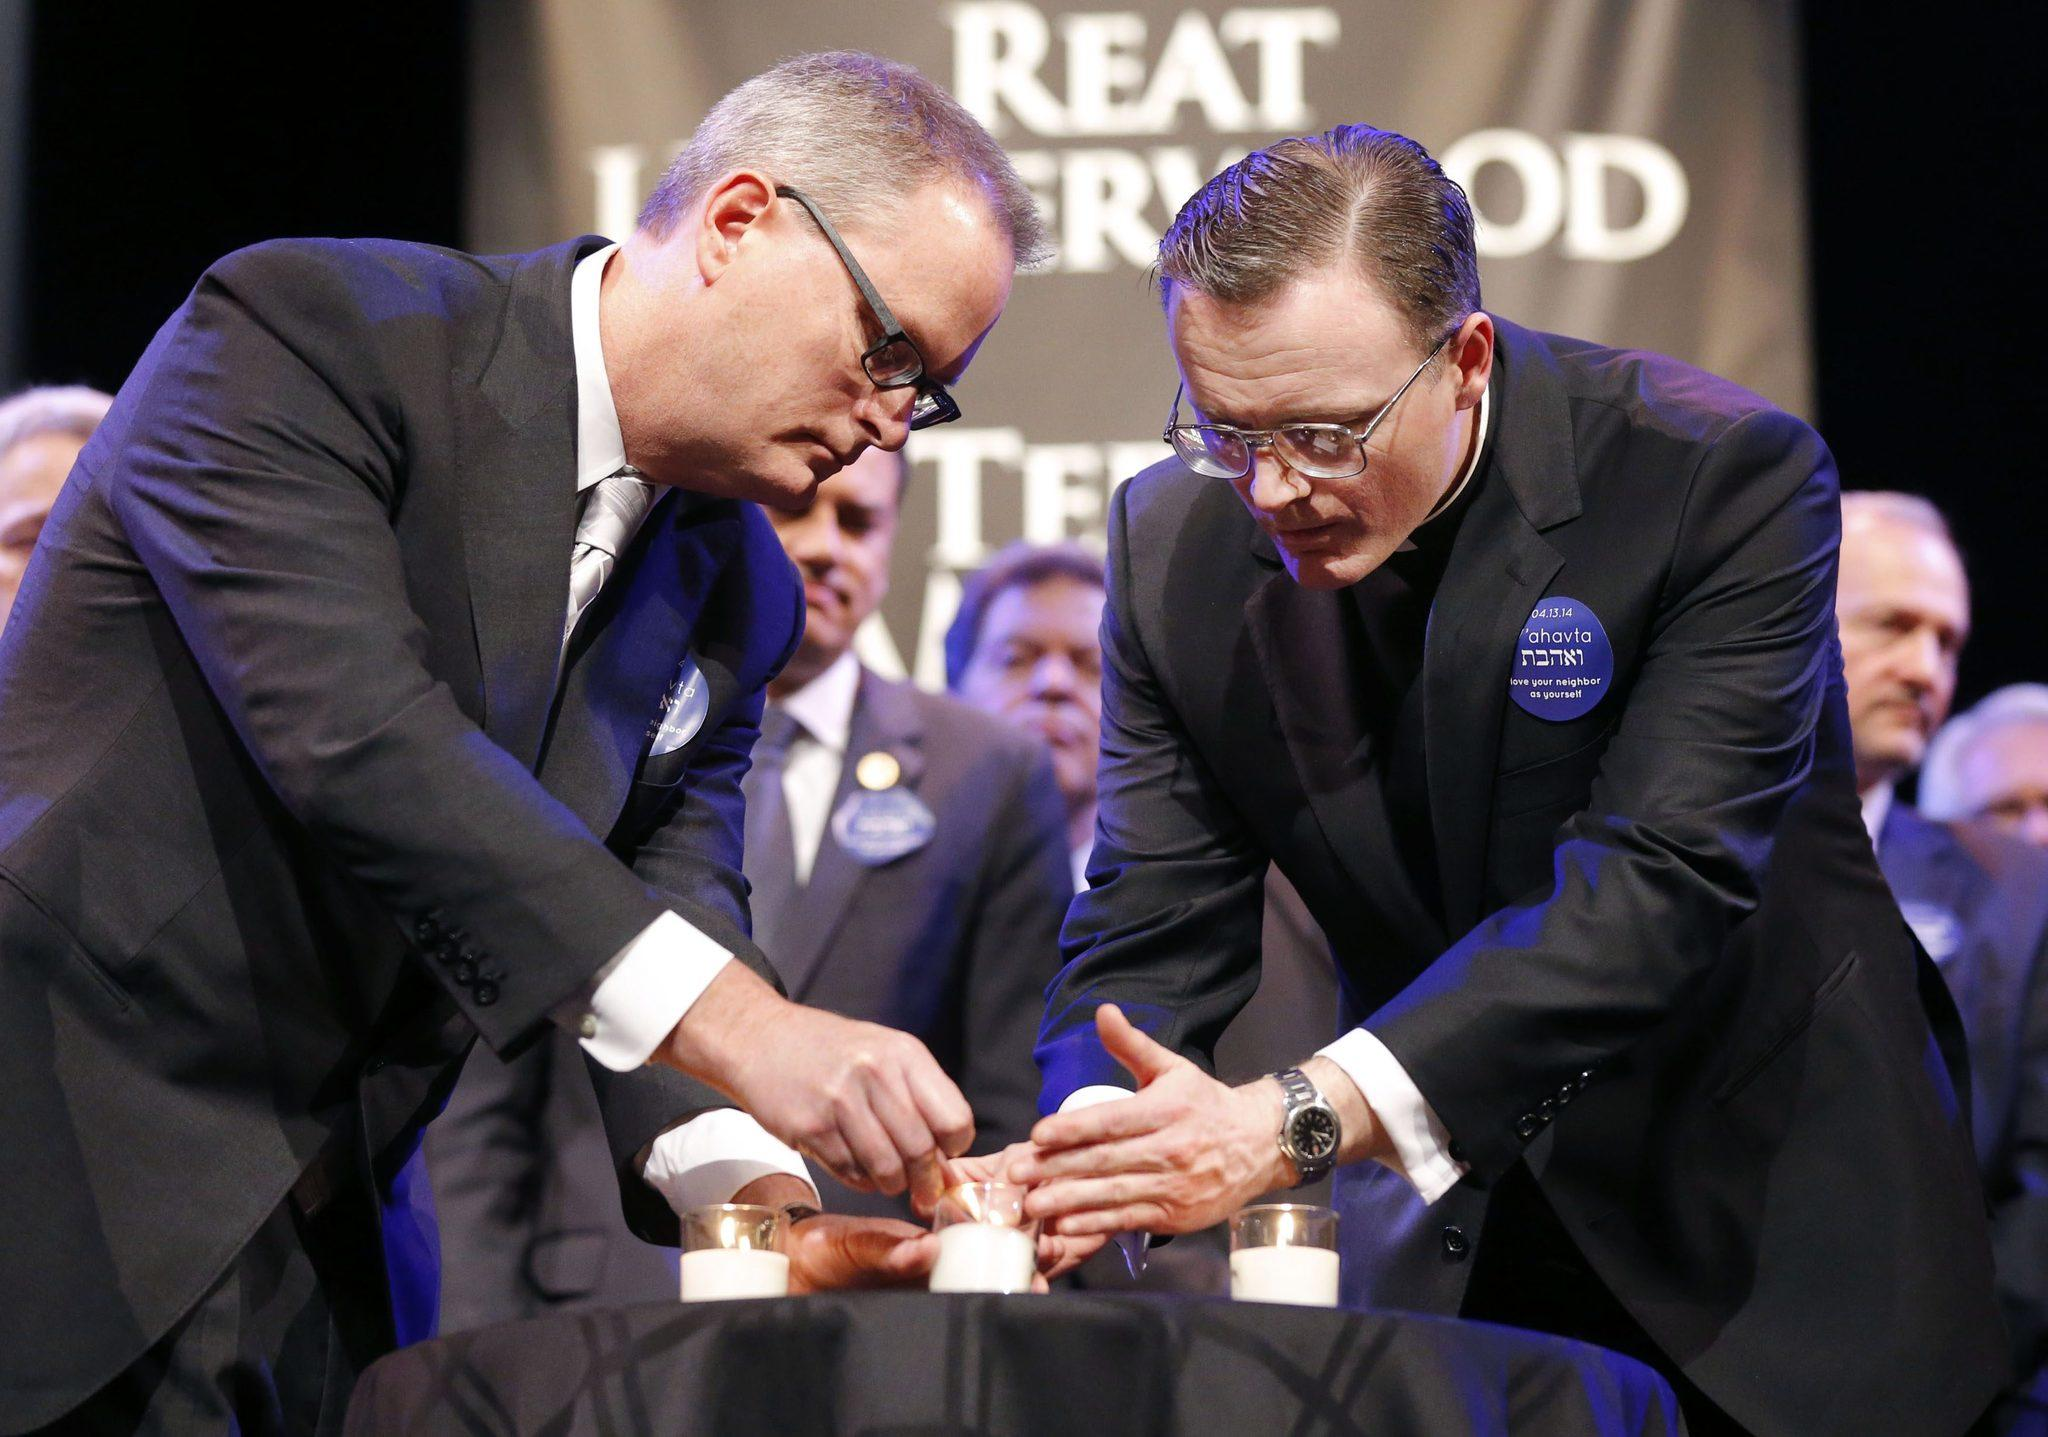 Rev. Adam Hamilton (L) and Fr. Stephen Cook light candles victims during the Interfaith Service of Unity and Hope to remember victims of Sunday's shootings at the Jewish Community Center in Overland Park, Kansas on April 17.